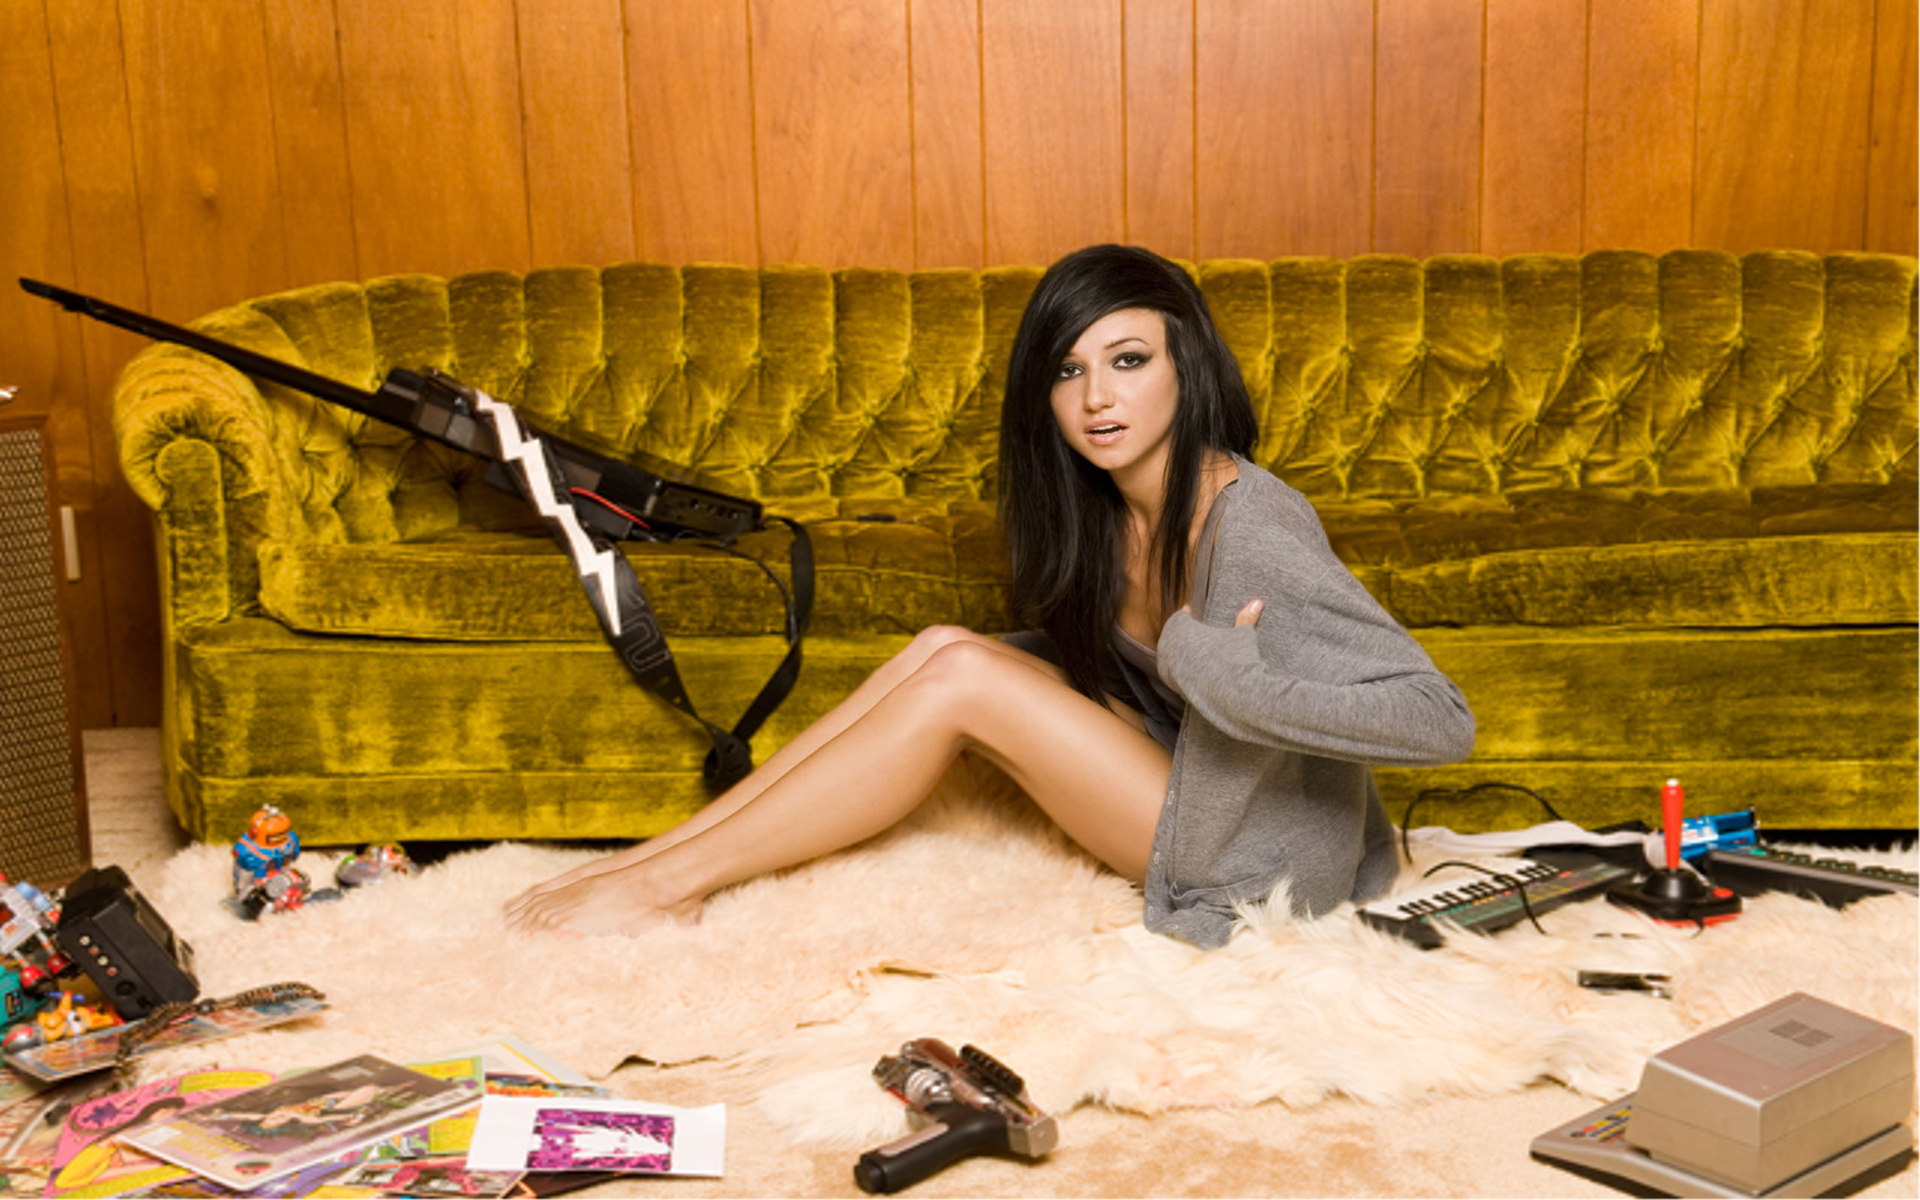 Brunettes Legs Wallpaper 1920x1200 Brunettes Legs Women Couch Long 1920x1200